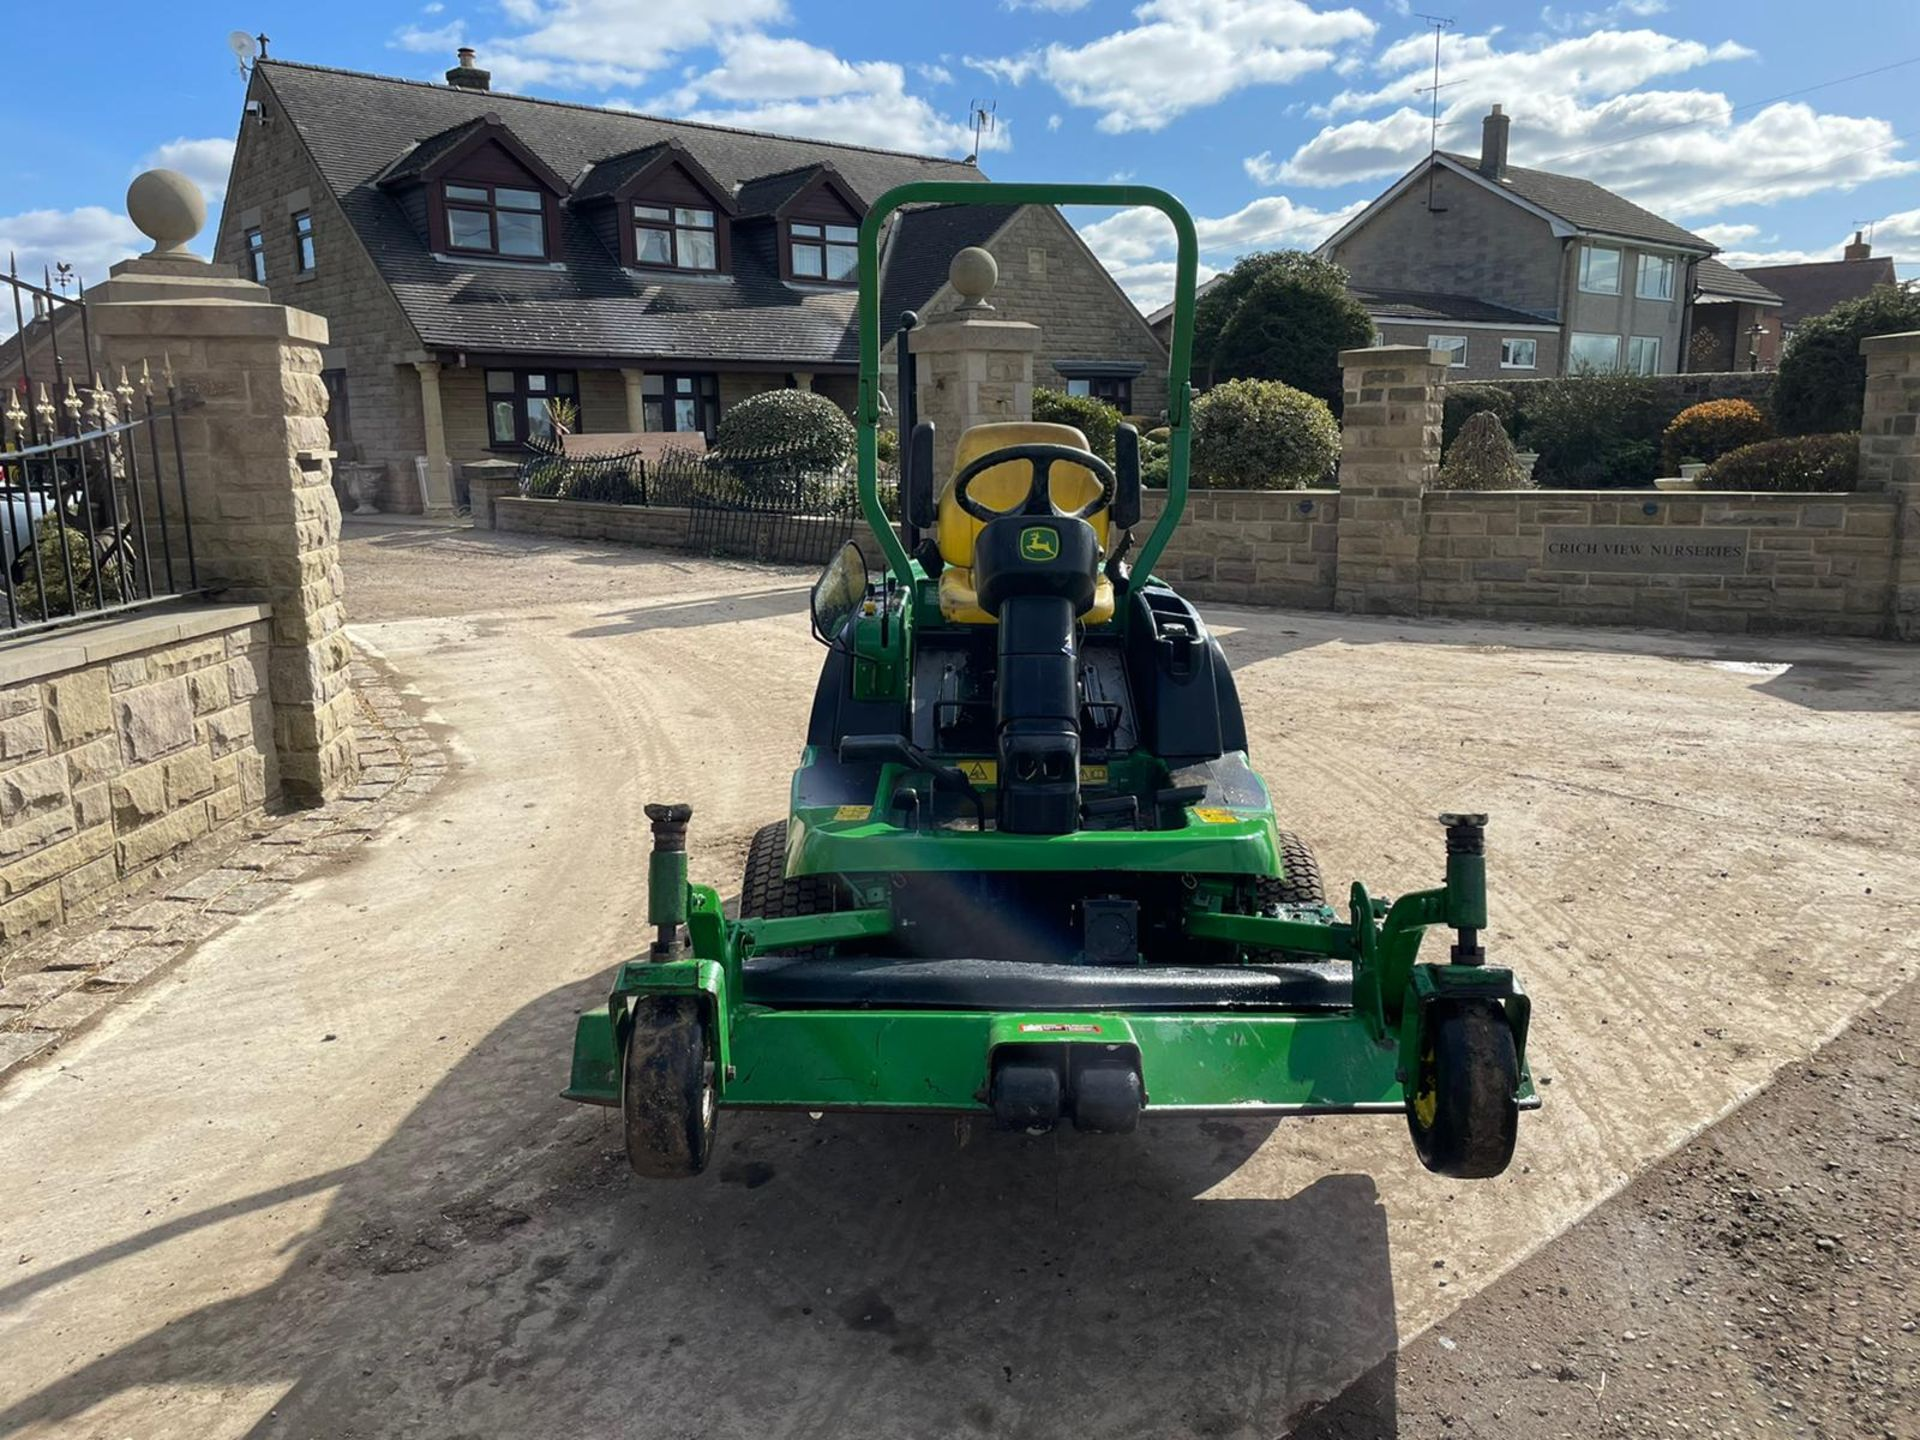 JOHN DEERE 1445 RIDE ON MOWER, RUNS DRIVES AND CUTS, IN USED BUT GOOD CONDITION *NO VAT* - Image 8 of 9